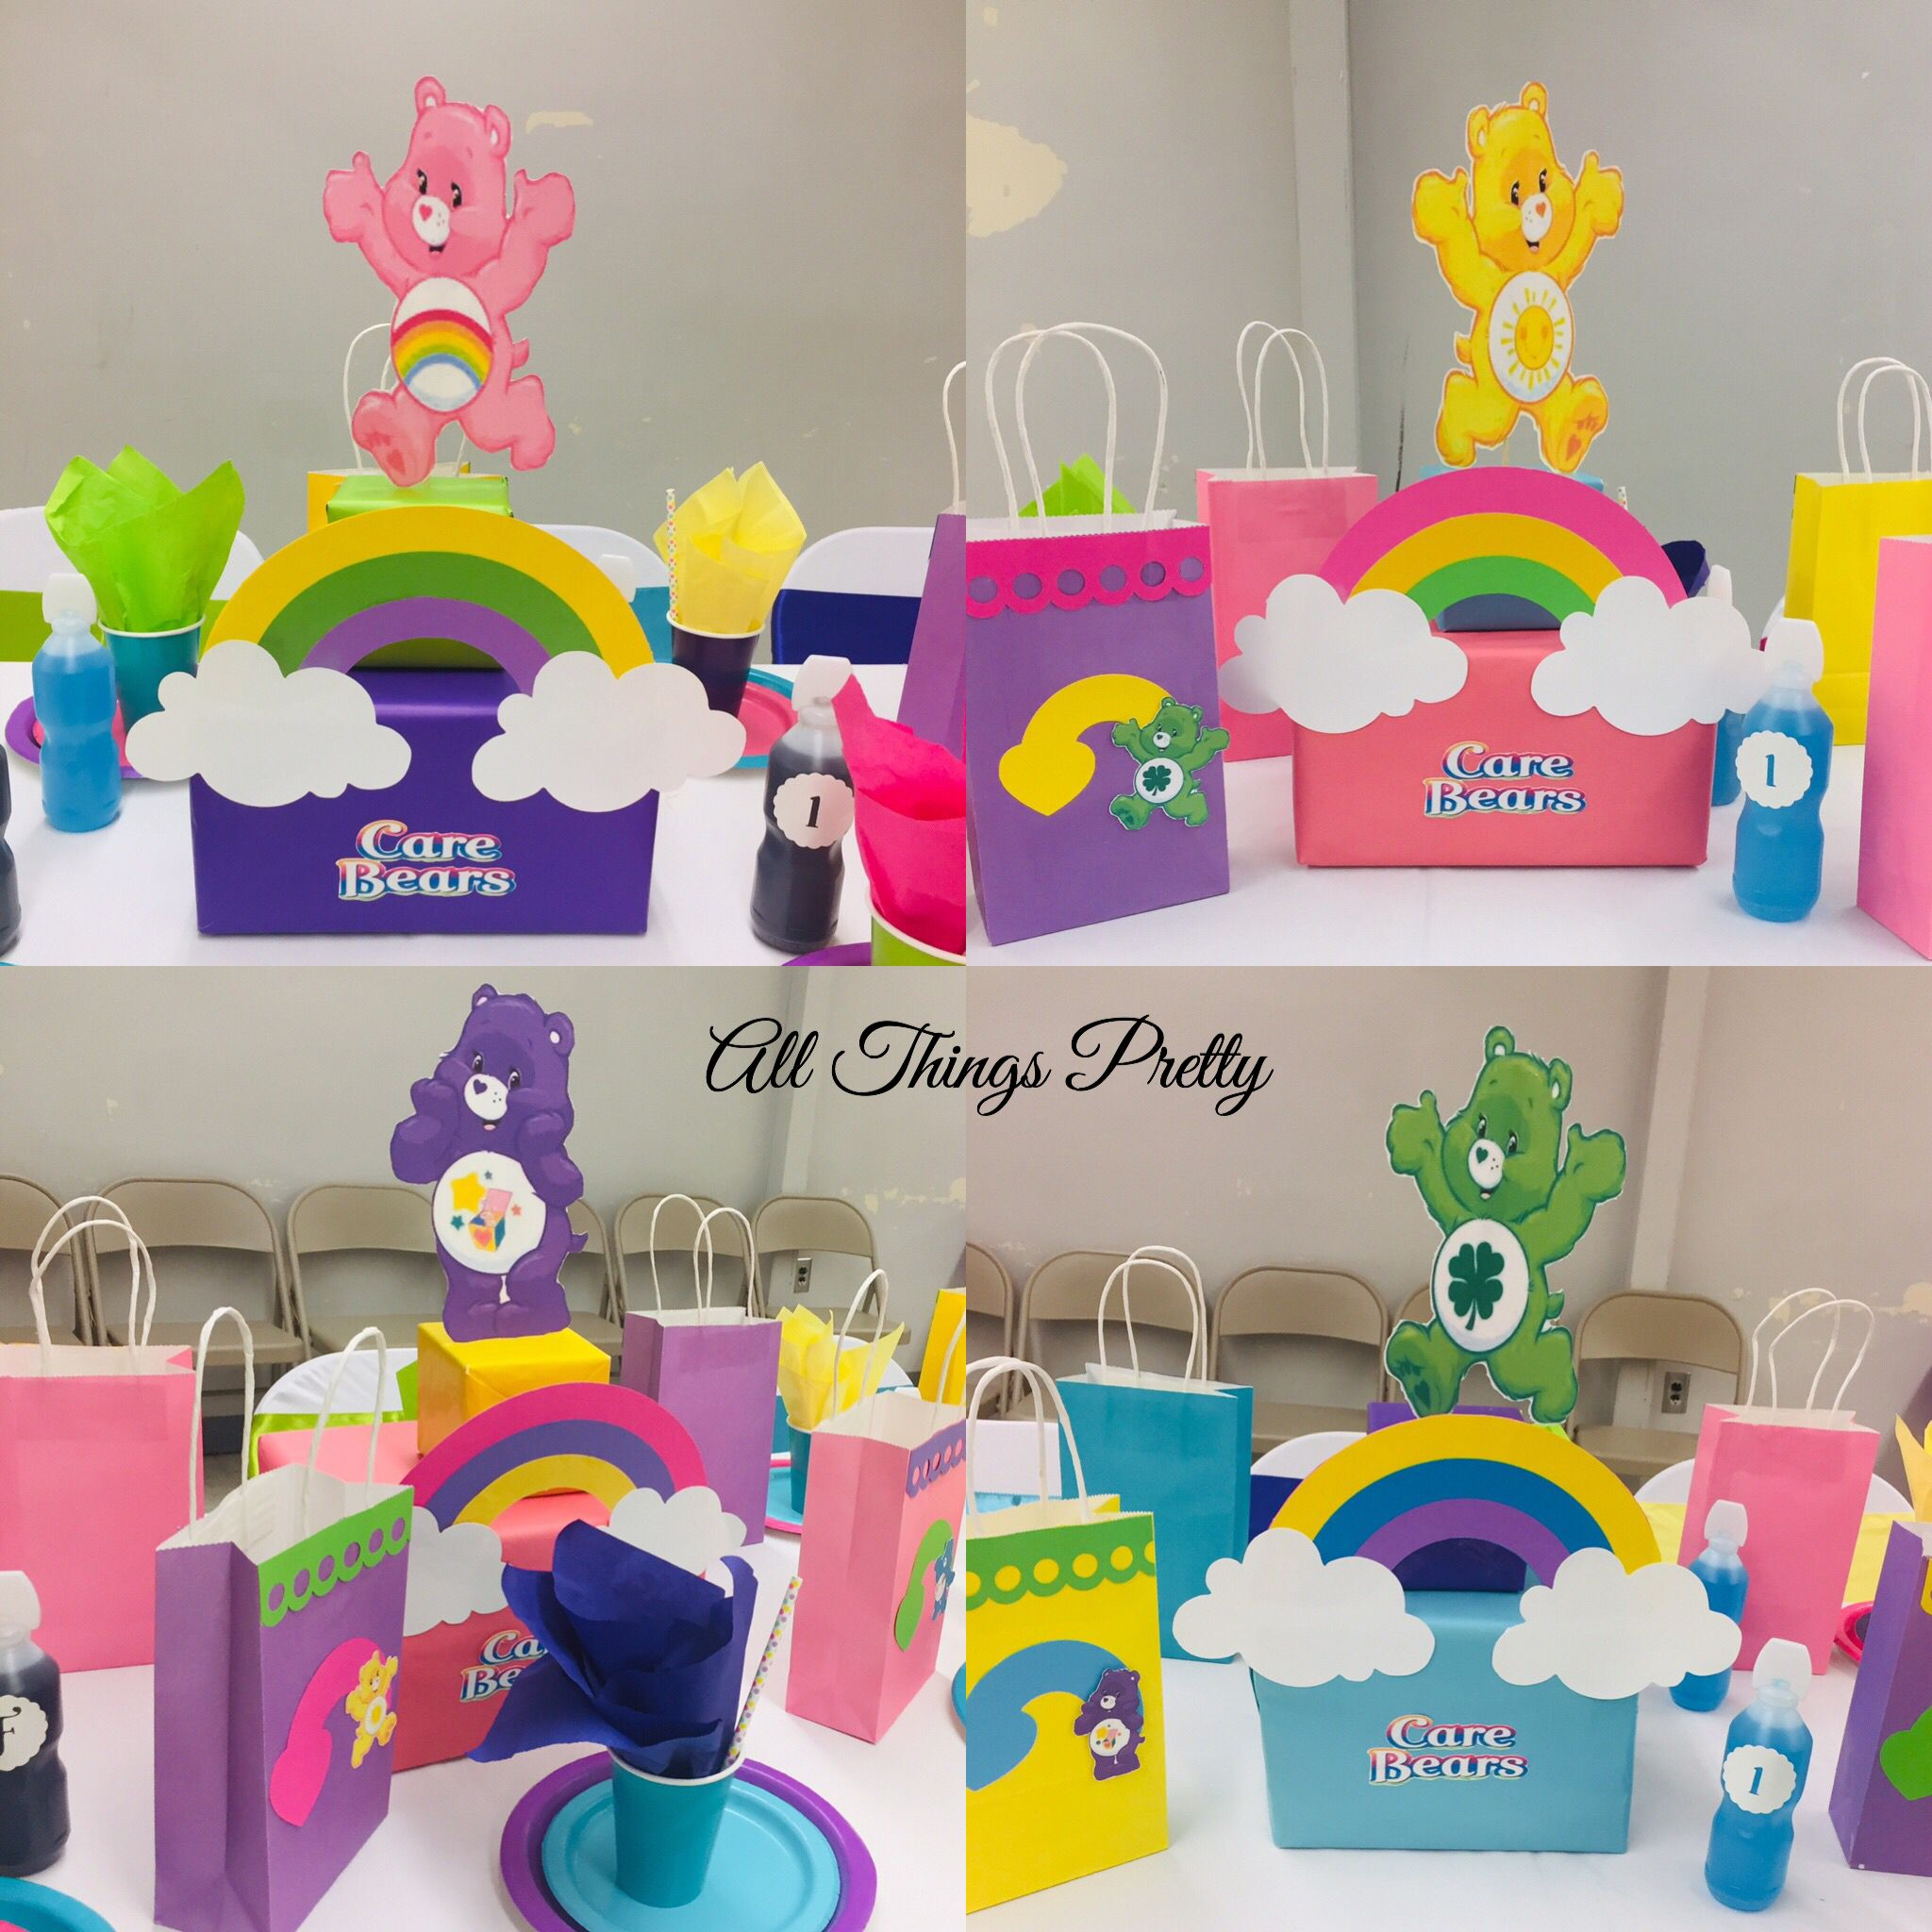 Care Bears Centerpieces I Created For A Birthday Party